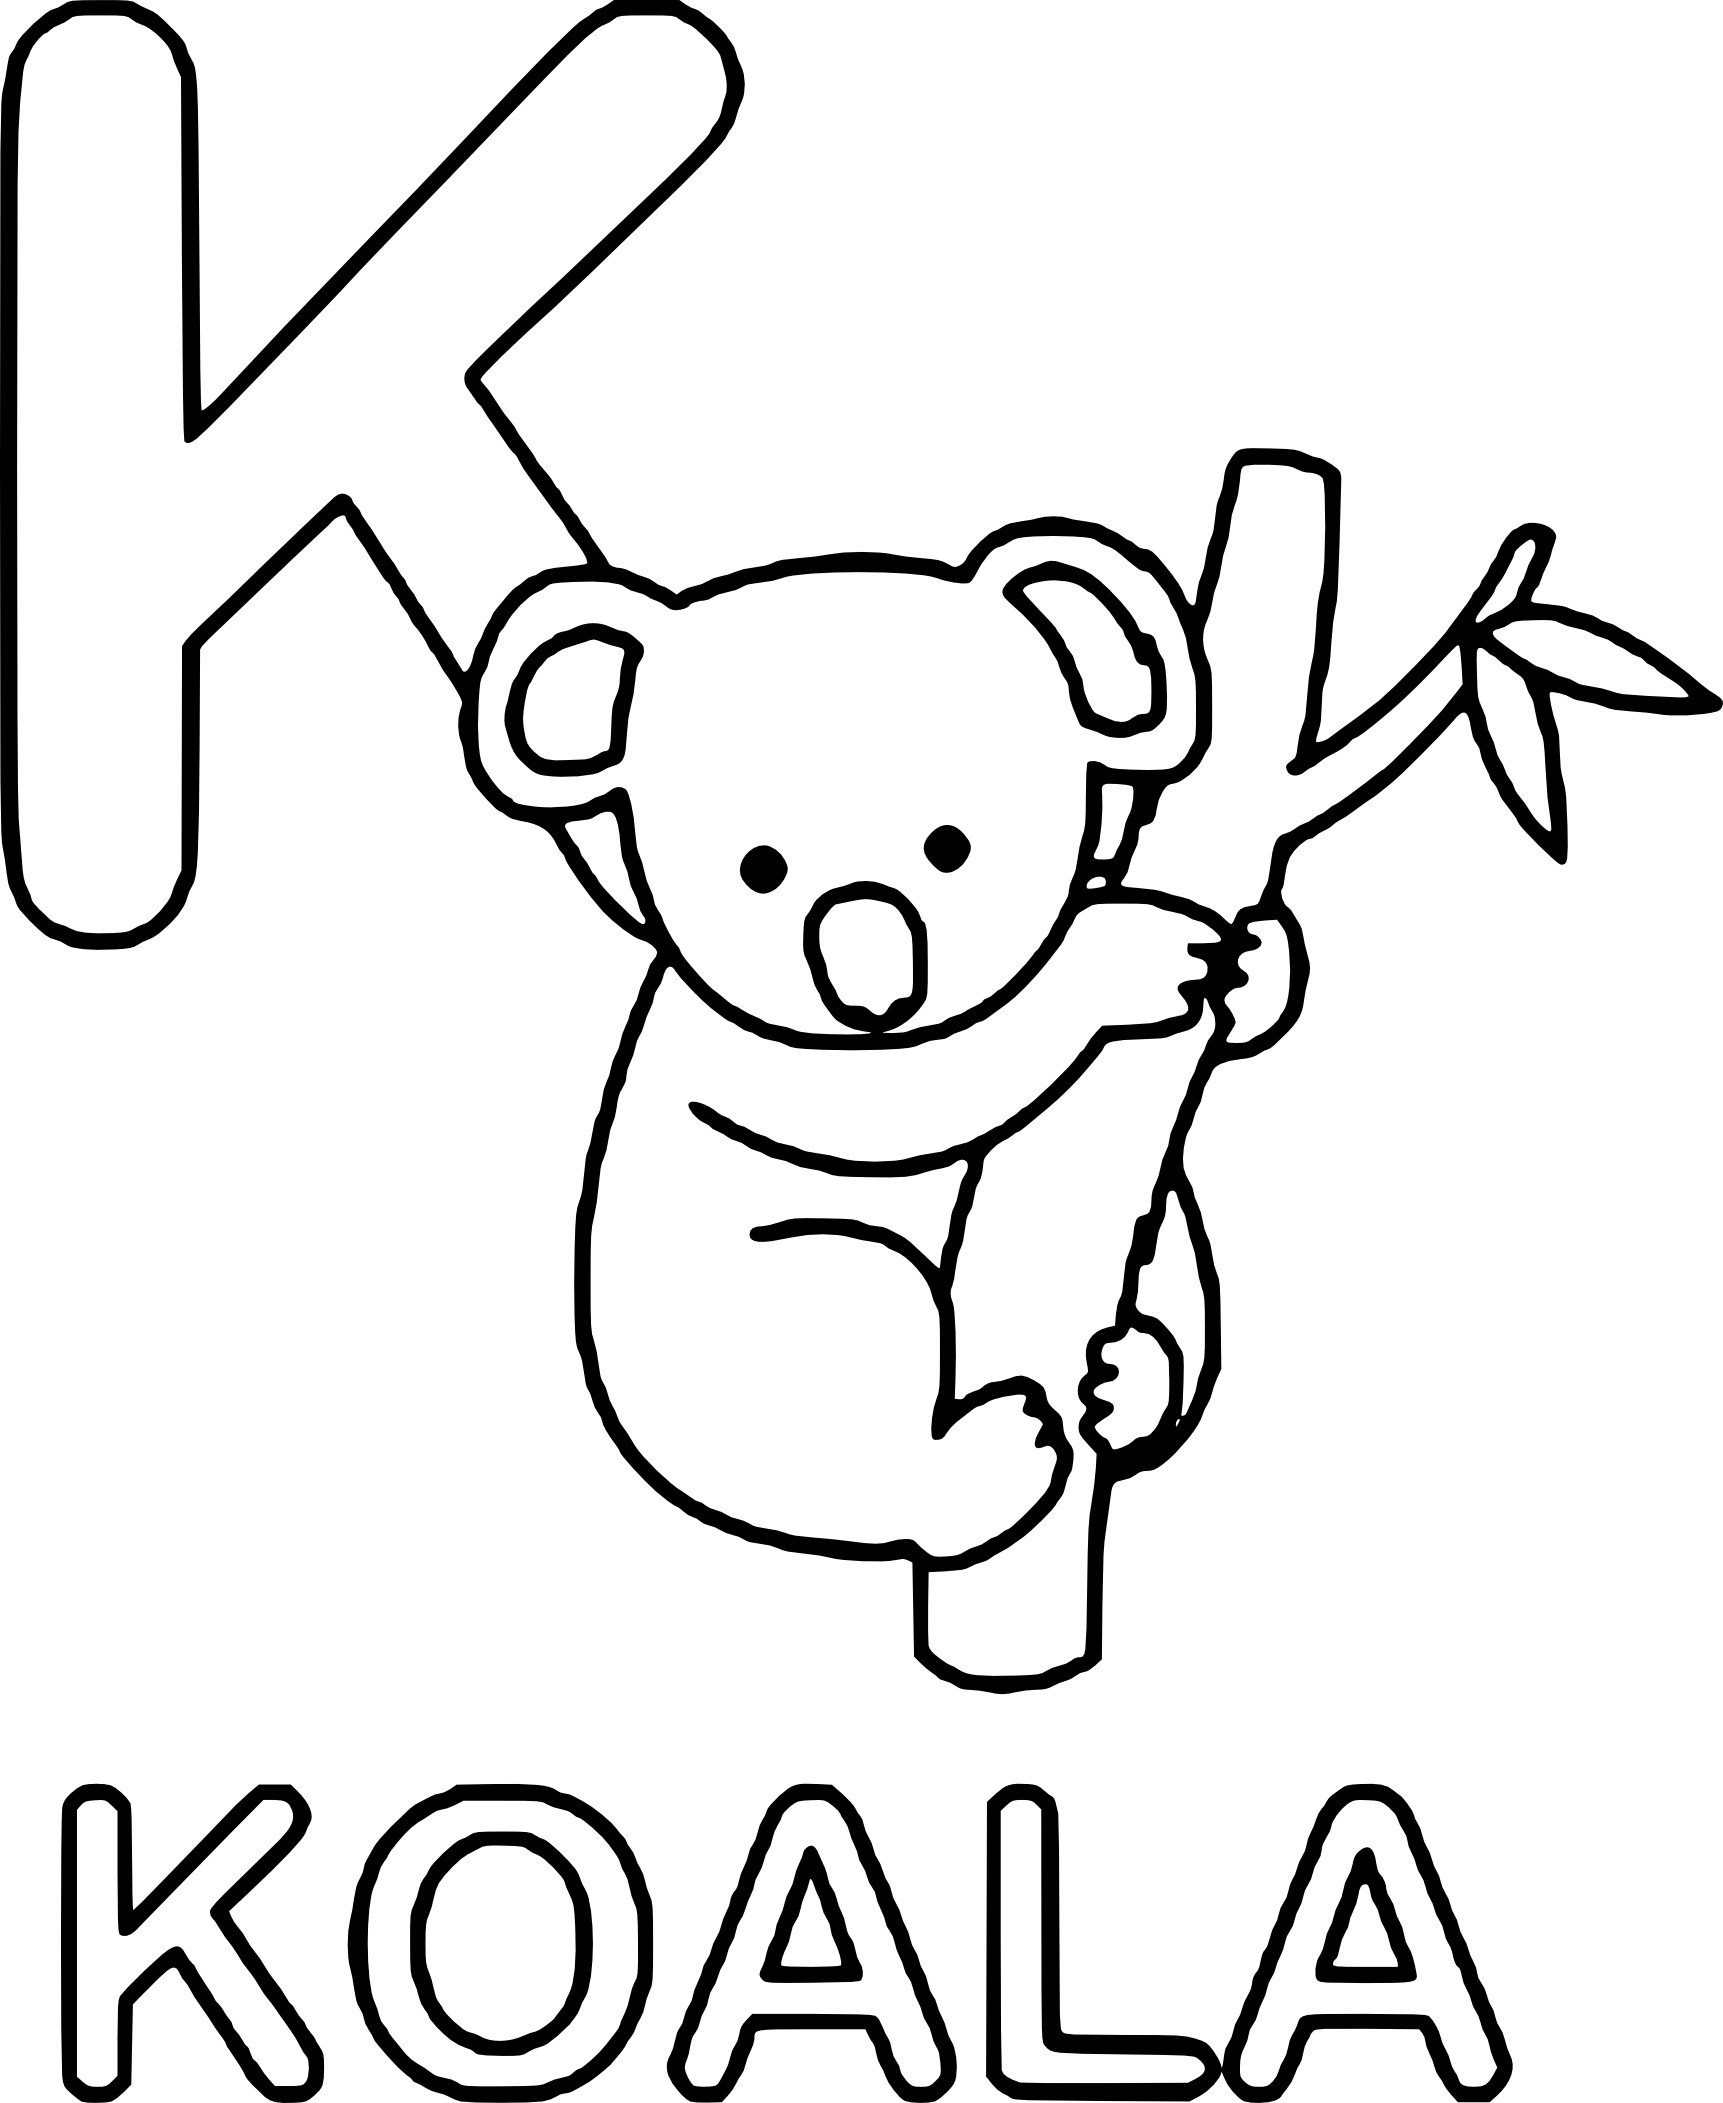 1723x2103 Surging Coloring Pages Of Koalas